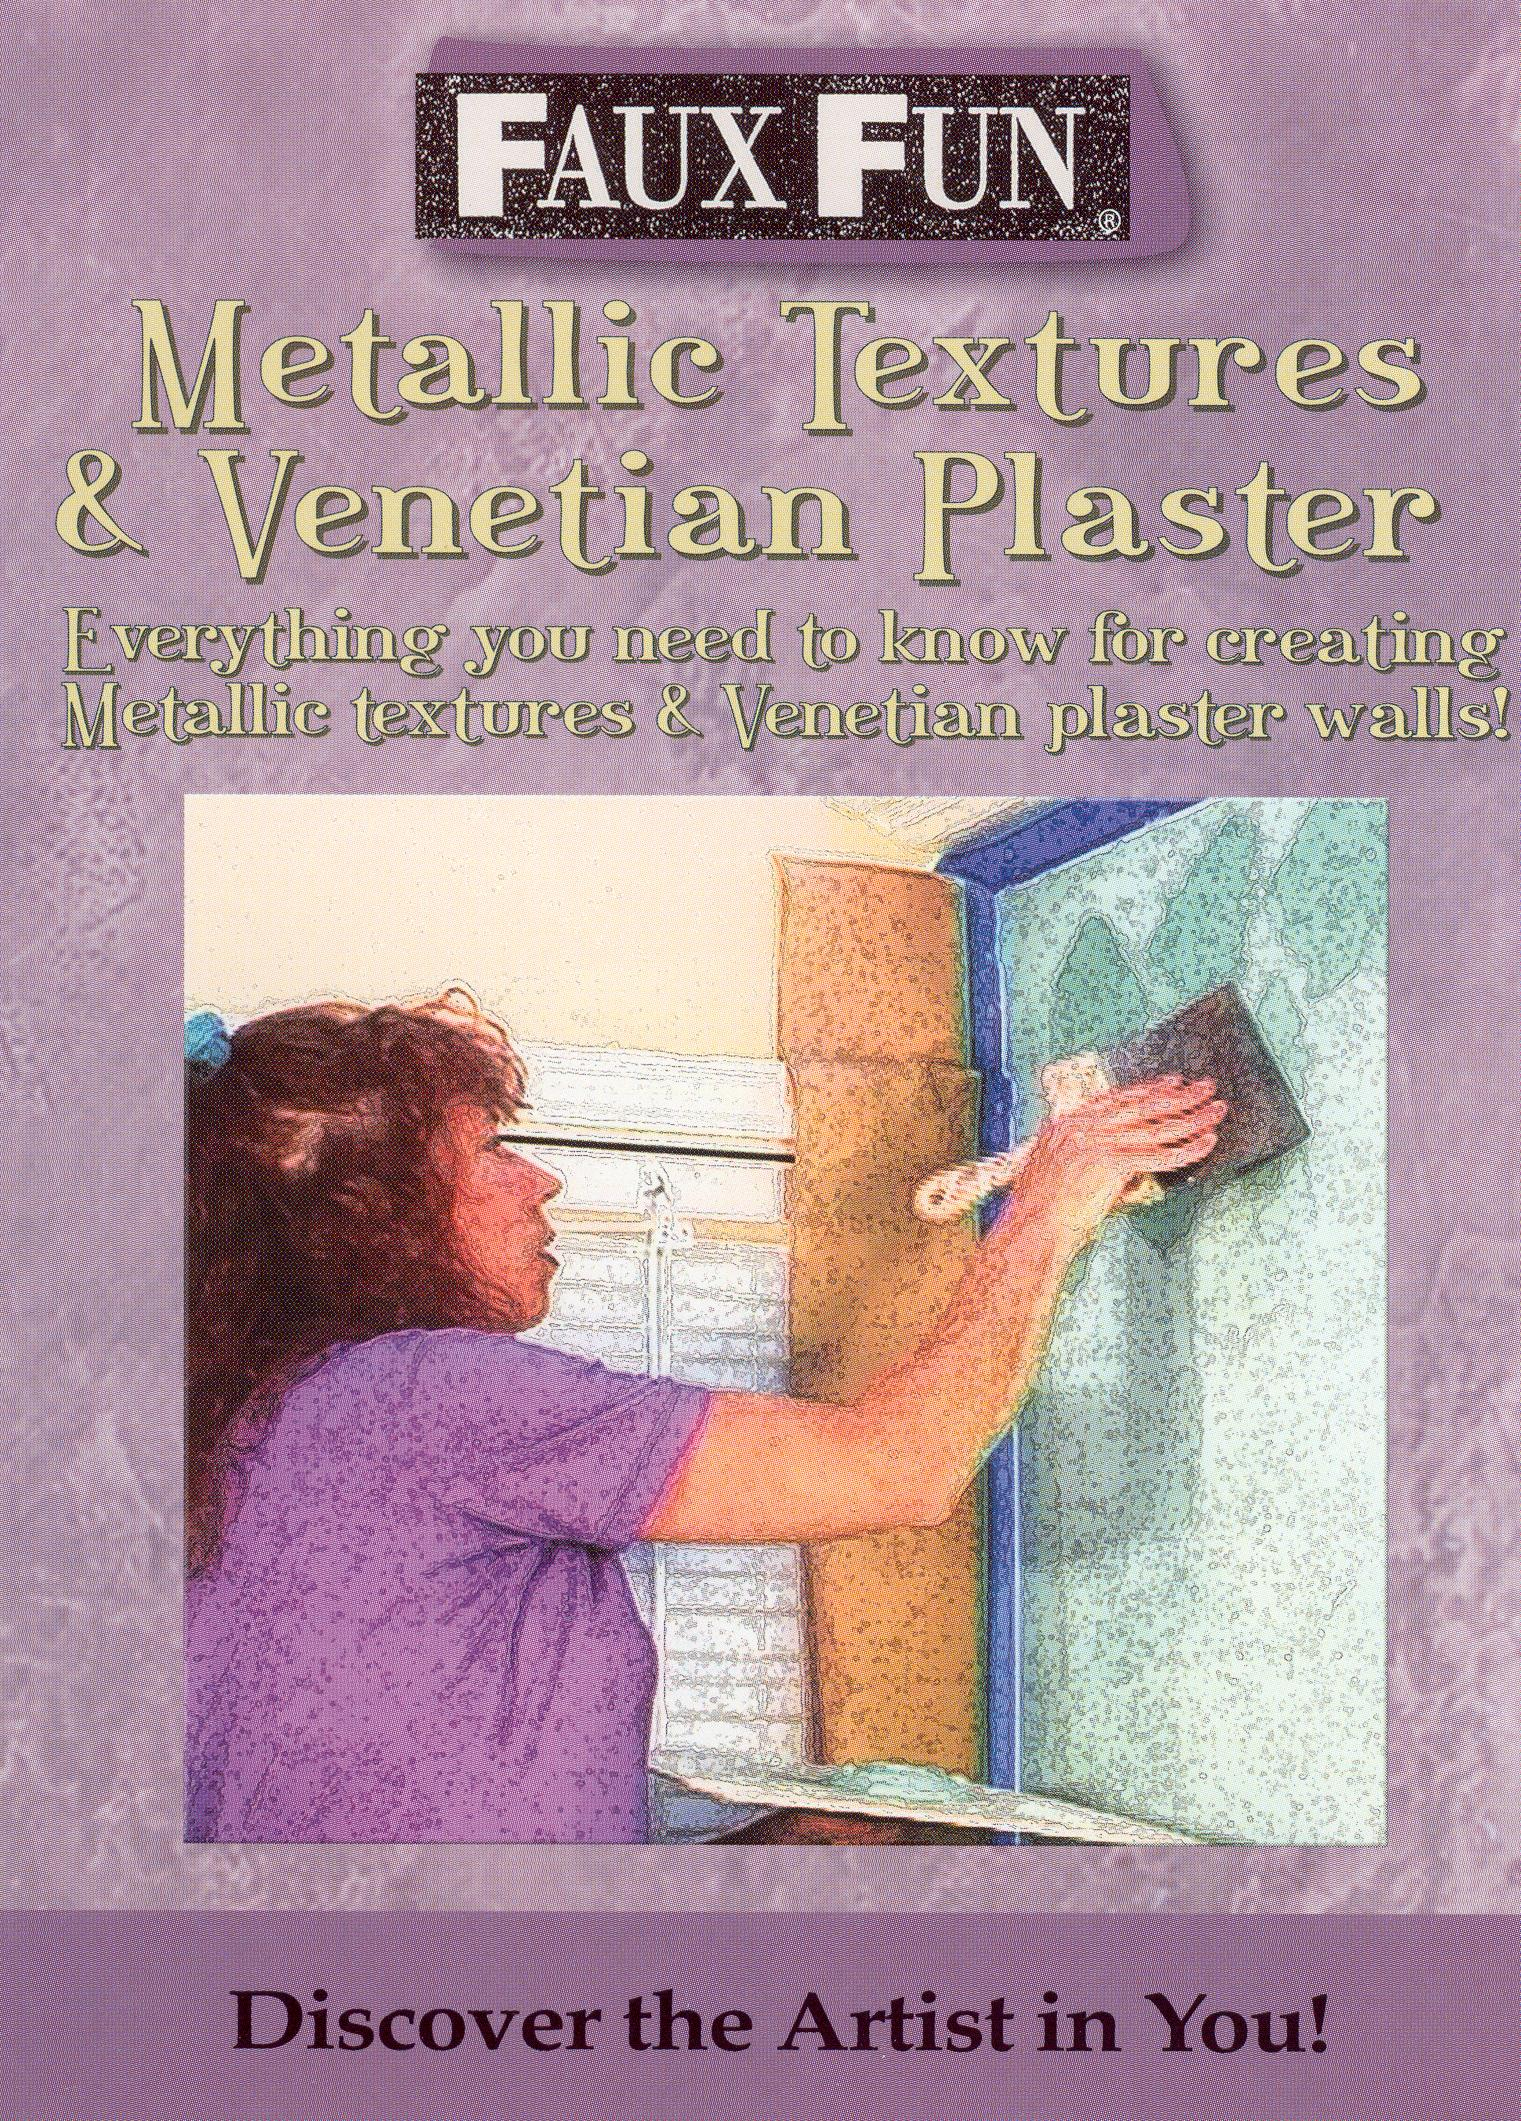 Faux Fun Painting: Venetian Plaster and Metallic Textures